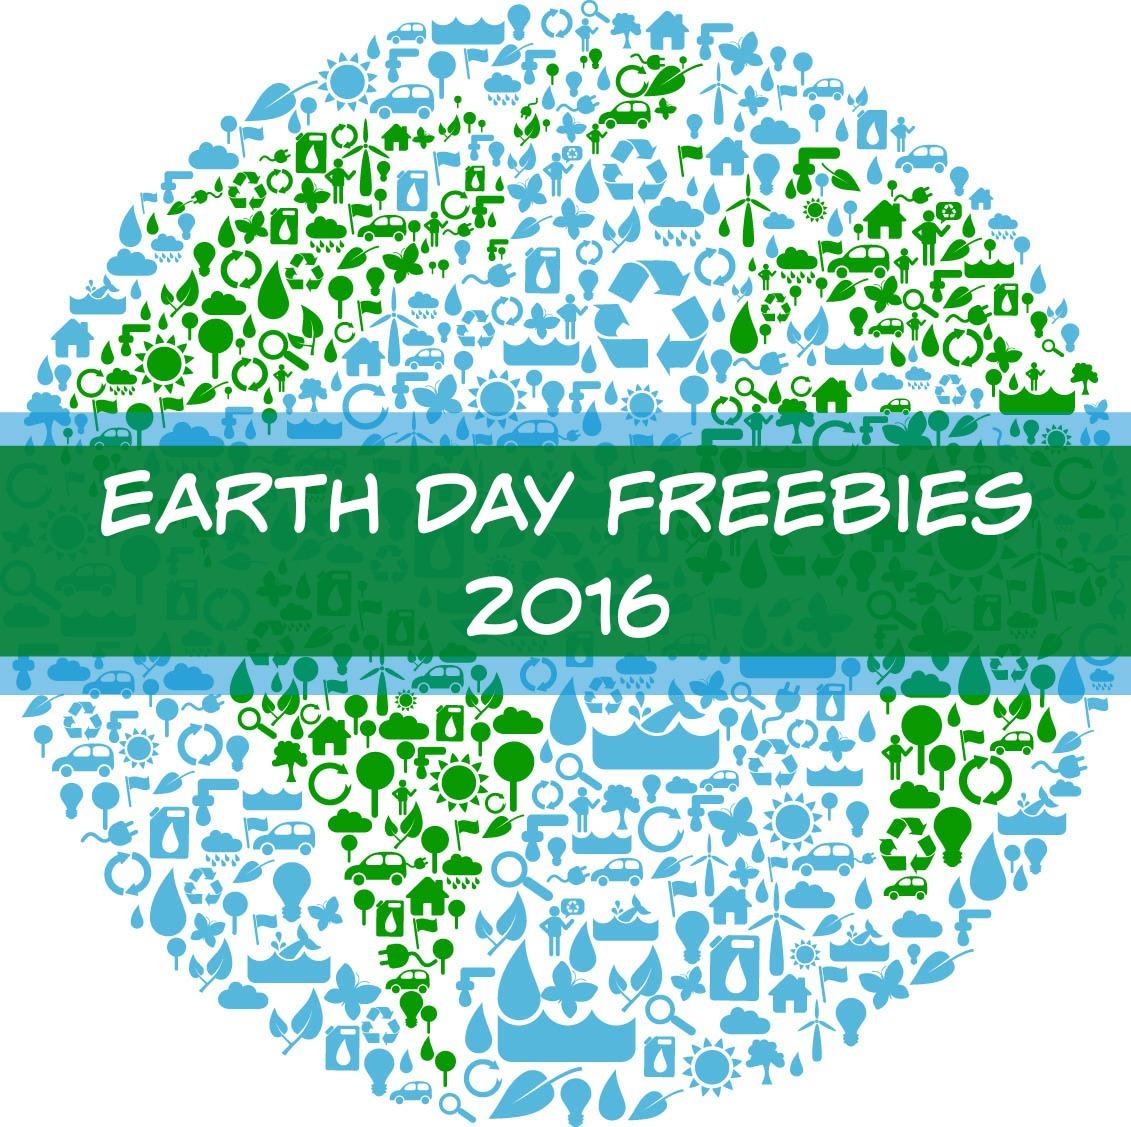 earth day freebies 2016